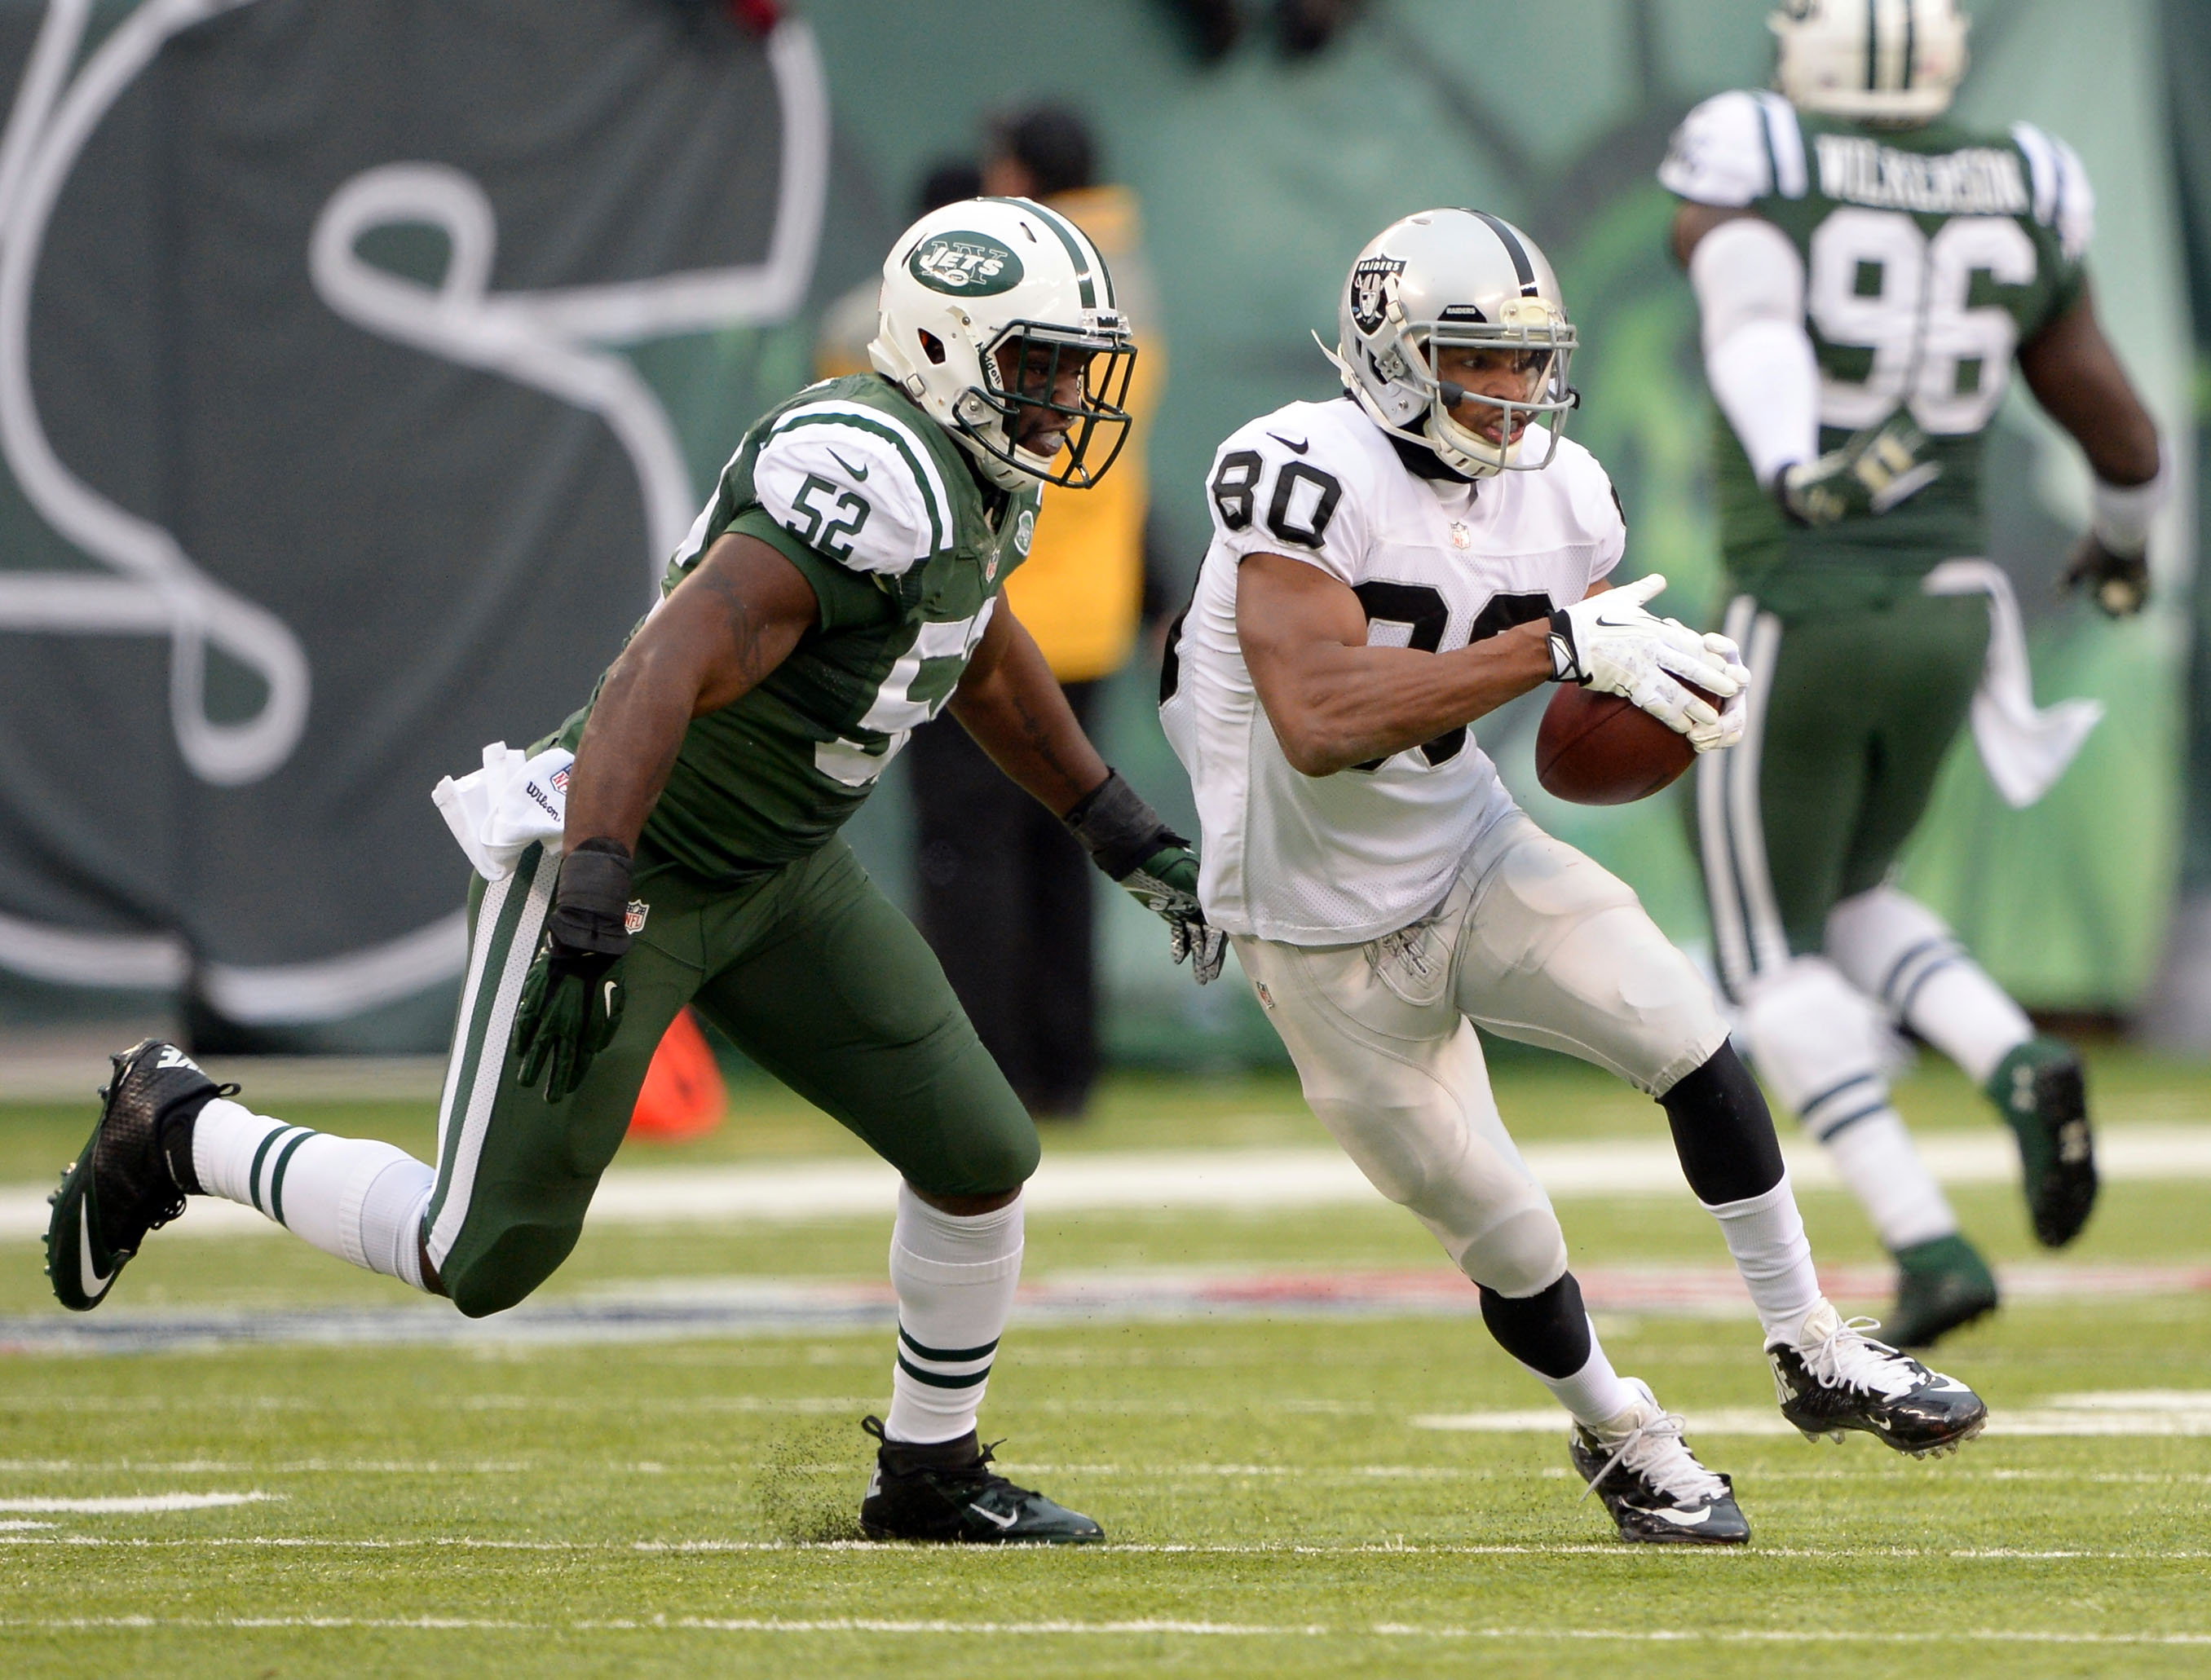 7606384-nfl-oakland-raiders-at-new-york-jets